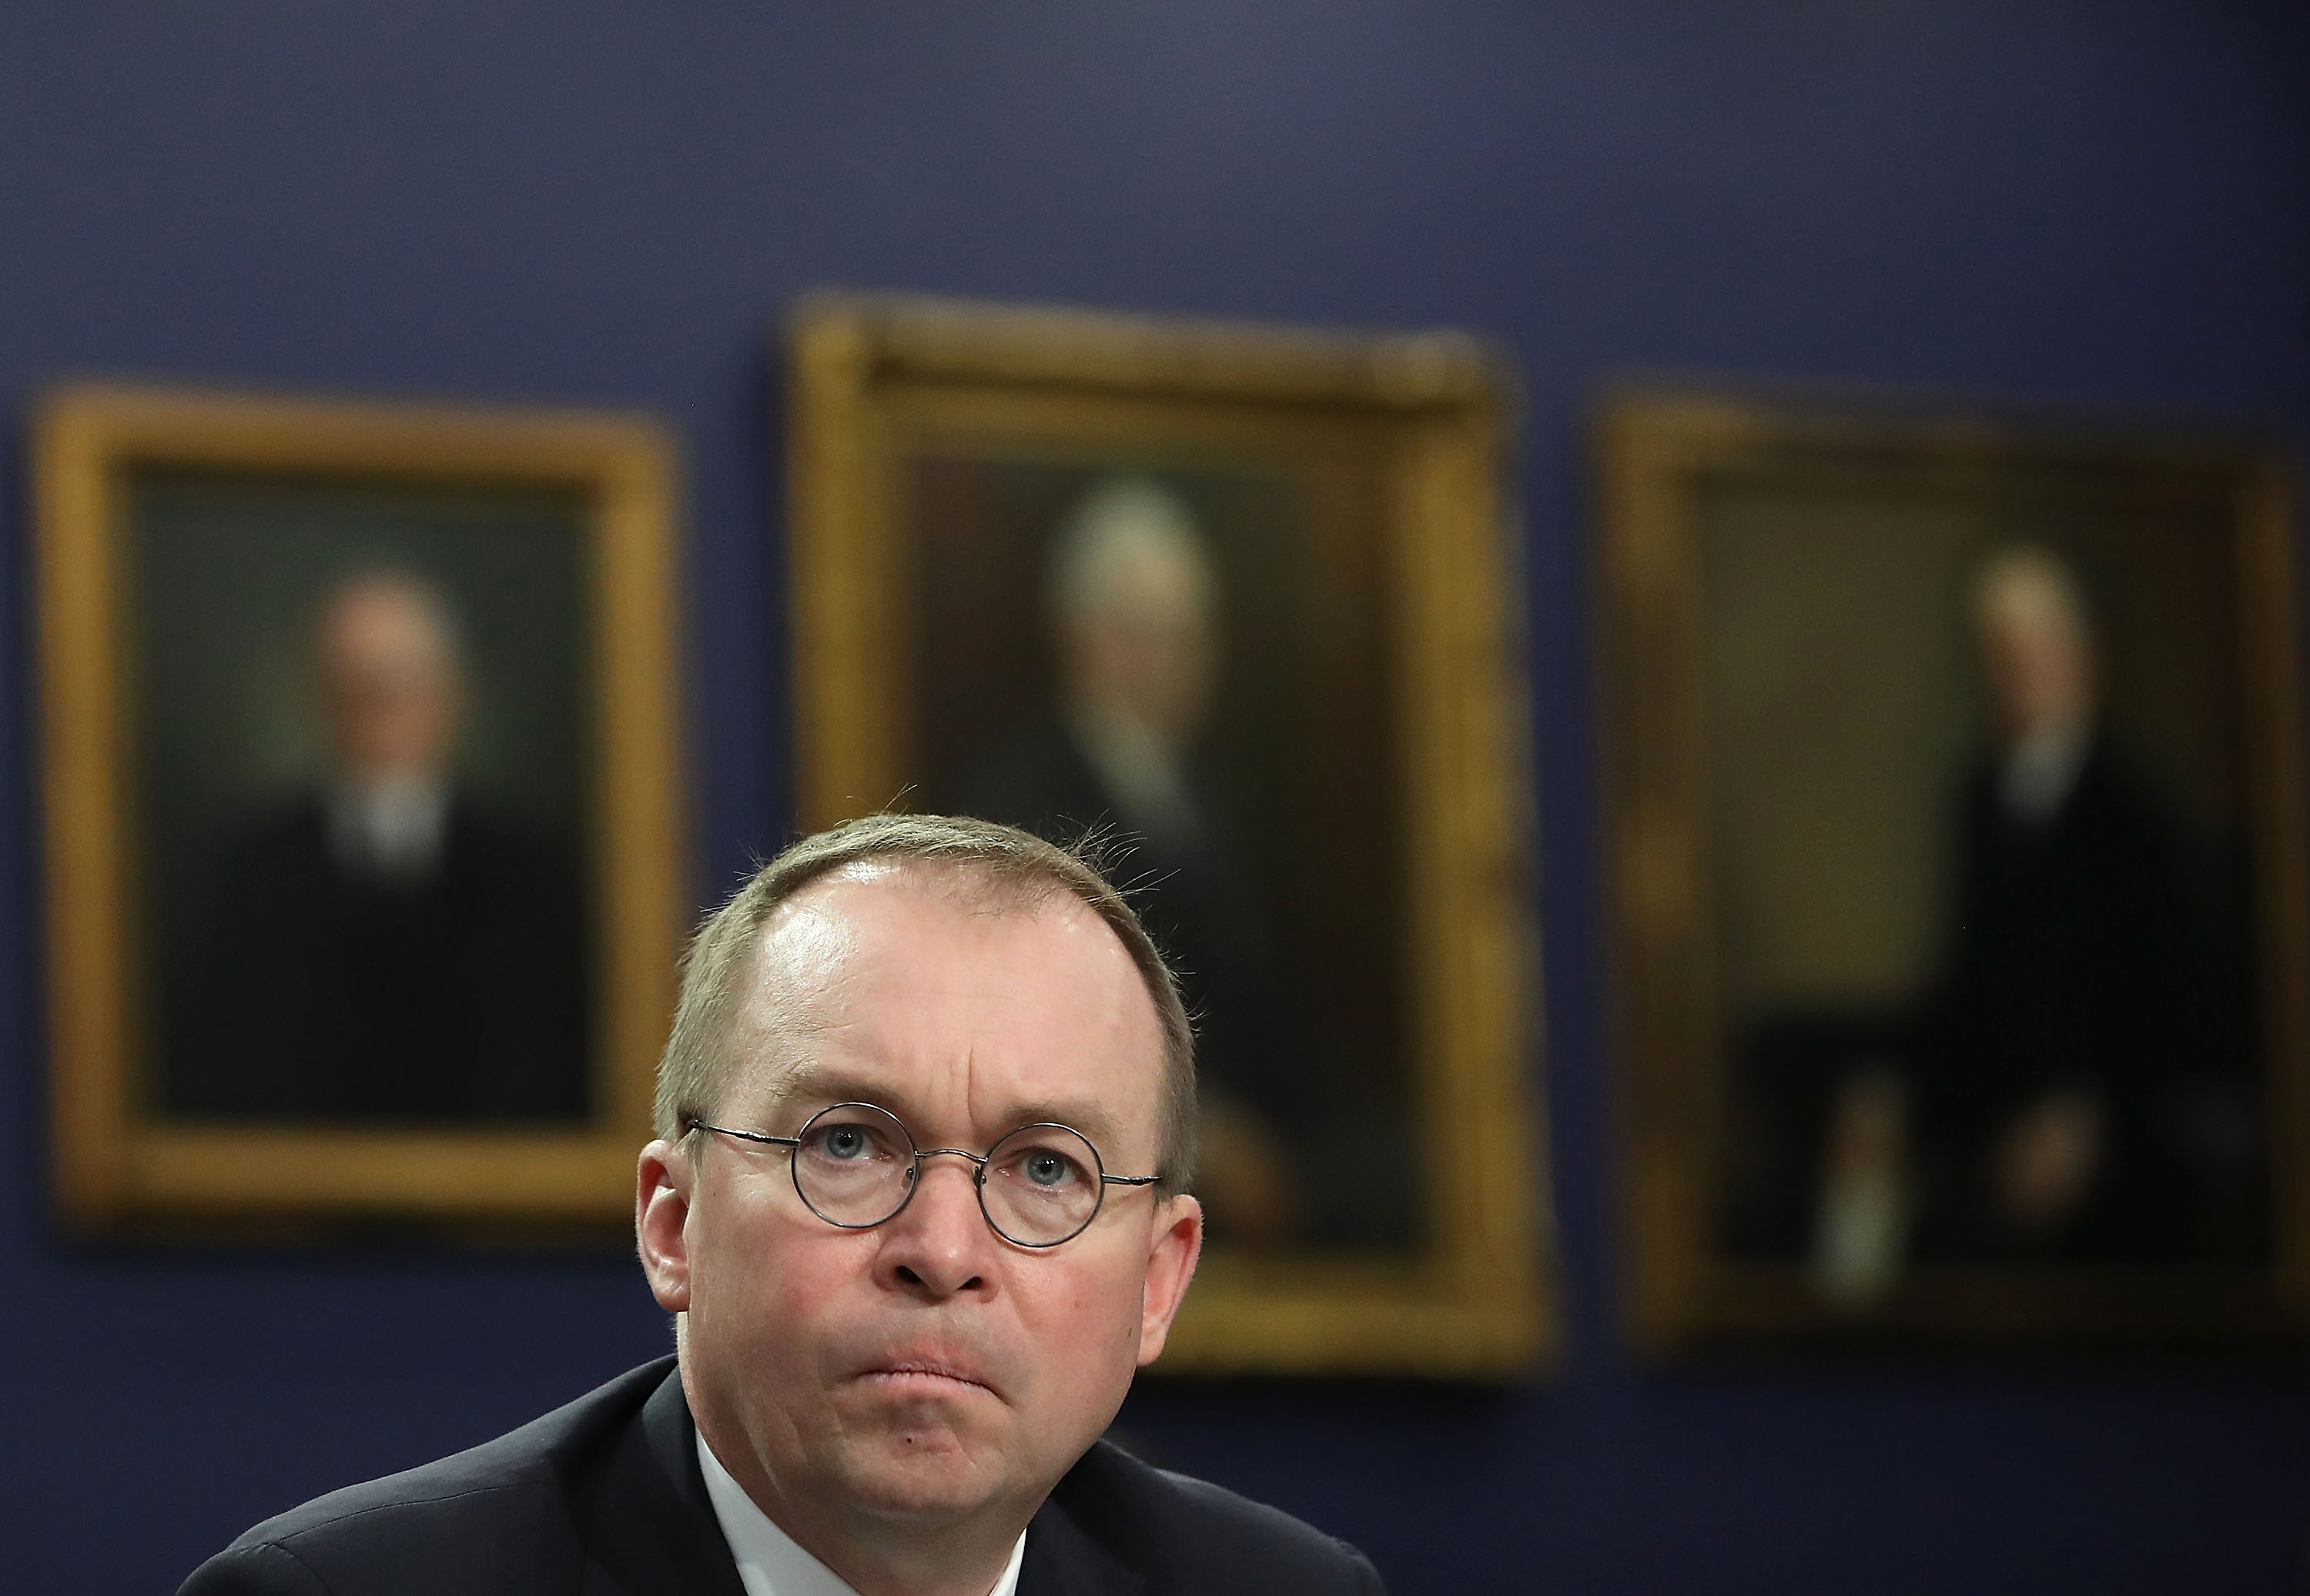 CFPB and Office of Management and Budget director Mick Mulvaney stares at the camera with a frown on his face. he wears glasses and sits in front of three large portraits which are out of focus.